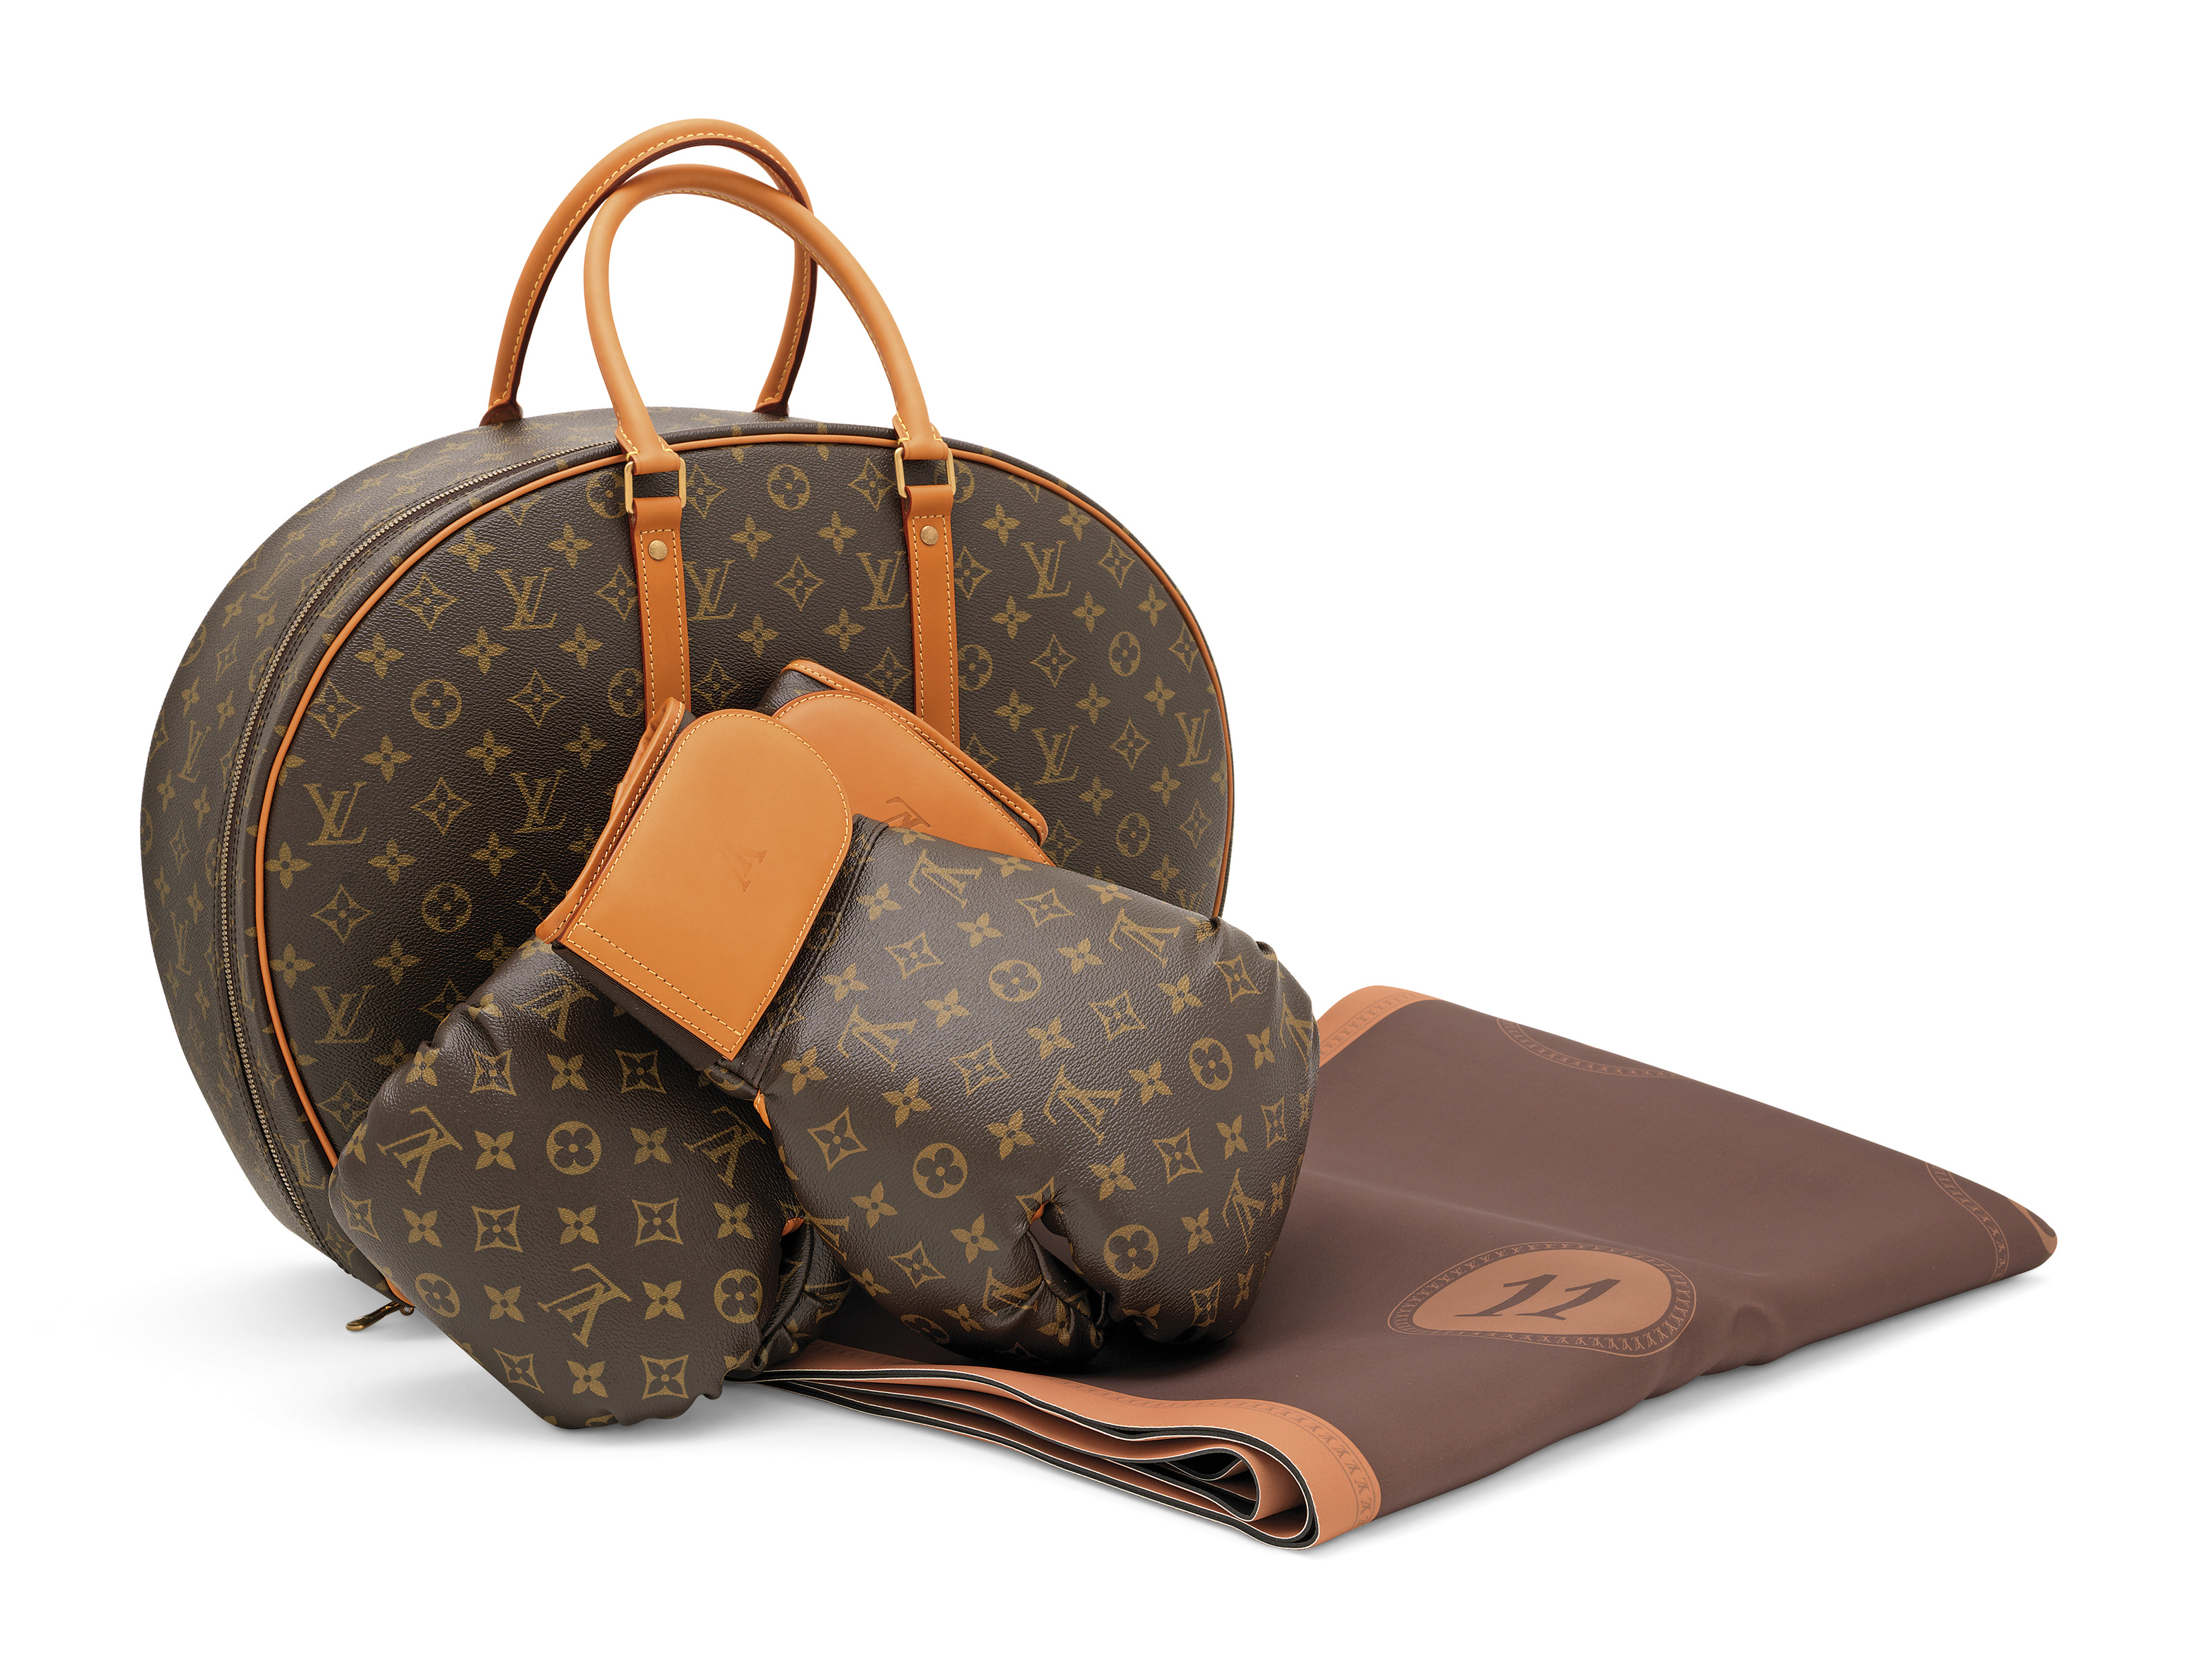 A LIMITED EDITION MONOGRAM CANVAS ICONOCLAST SET OF BOXING GLOVES, MAT & CASE BY KARL LAGERFELD